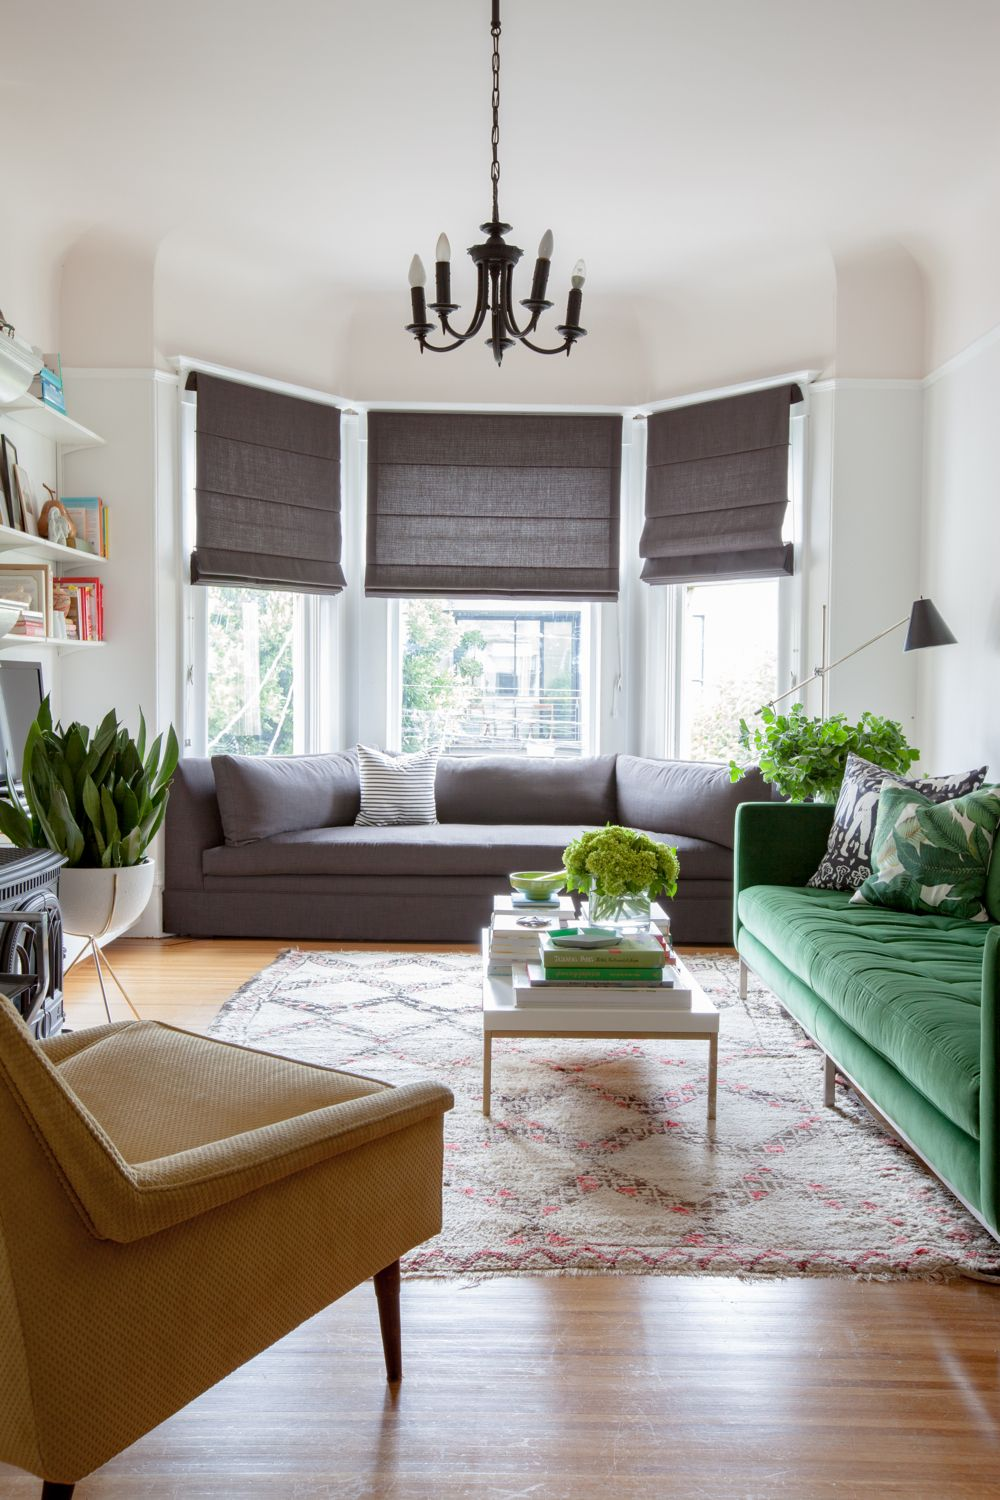 Gardinen Erker Bright But Cozy Home Tour Erker Gardinen Erkerfenster Deko